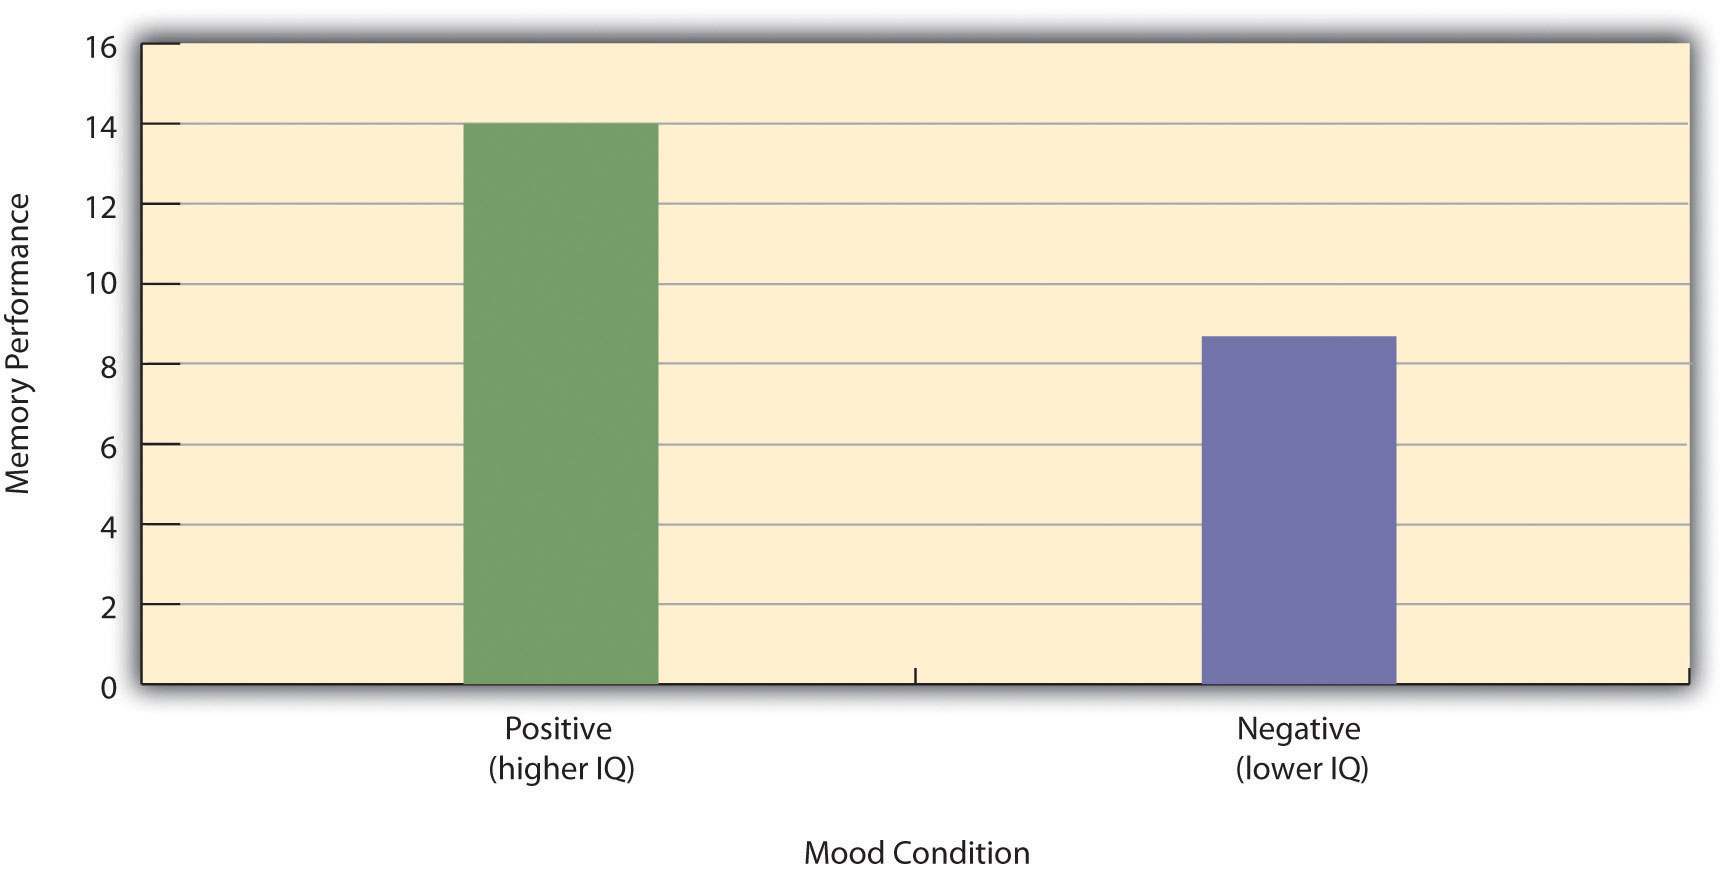 Hypothetical Results From a Study on the Effect of Mood on Memory